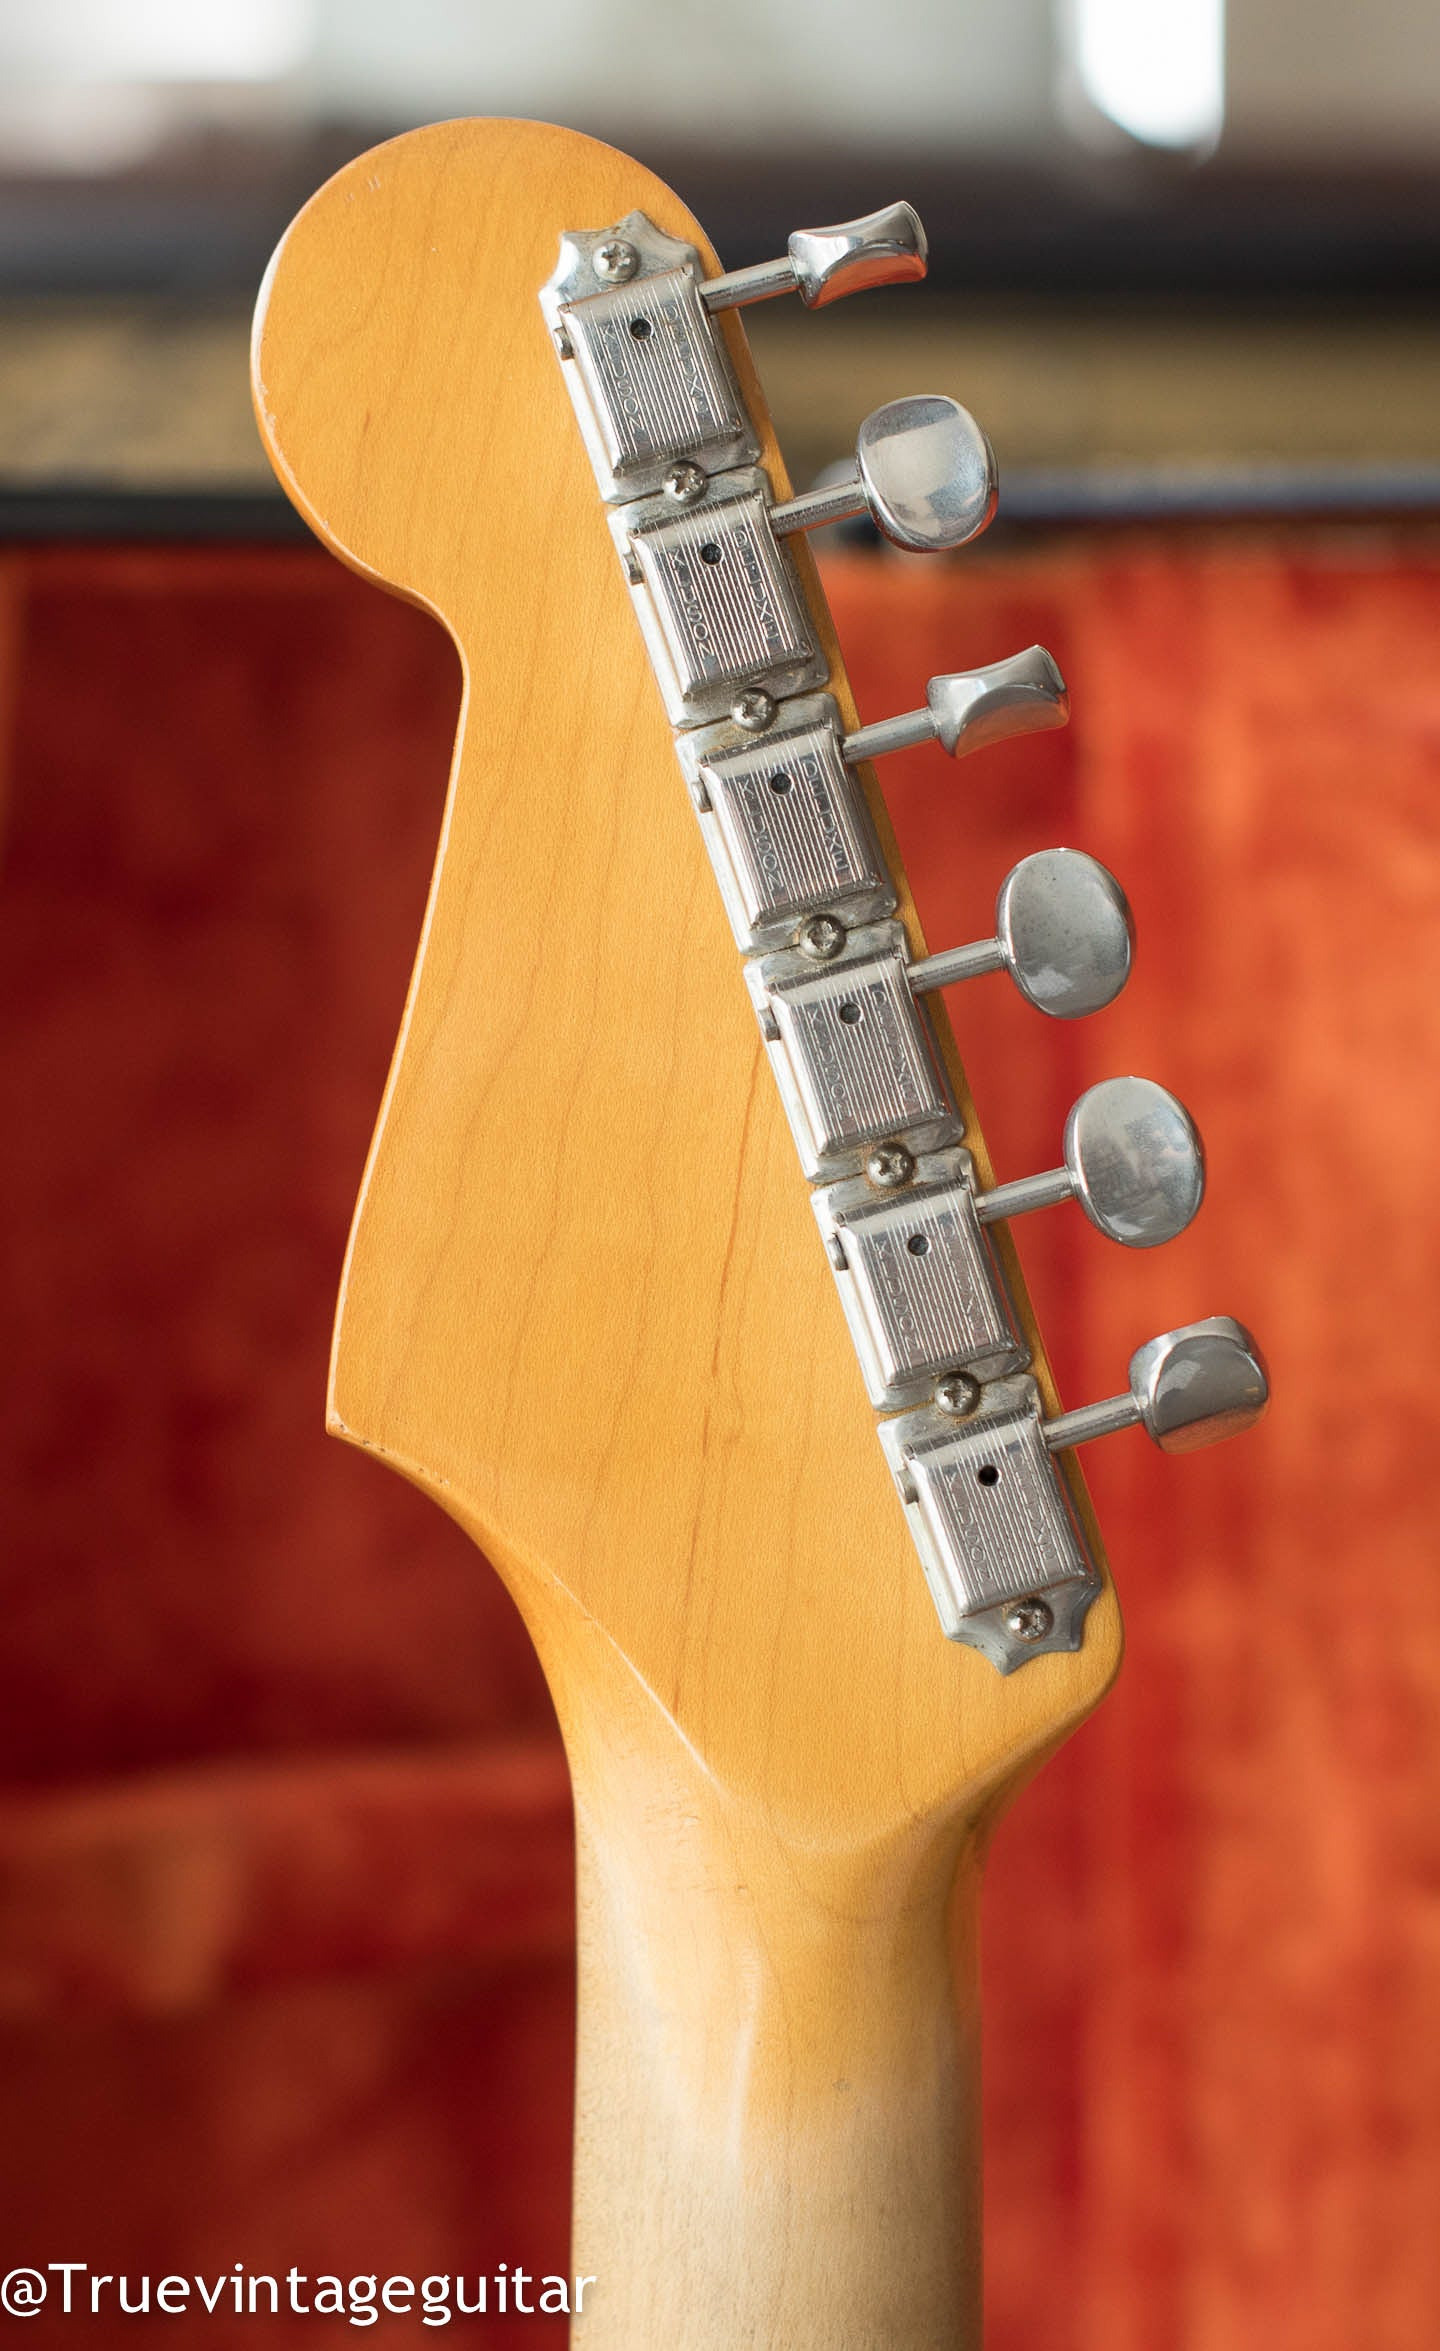 Double line Kluson tuners, Vintage 1965 Fender Stratocaster